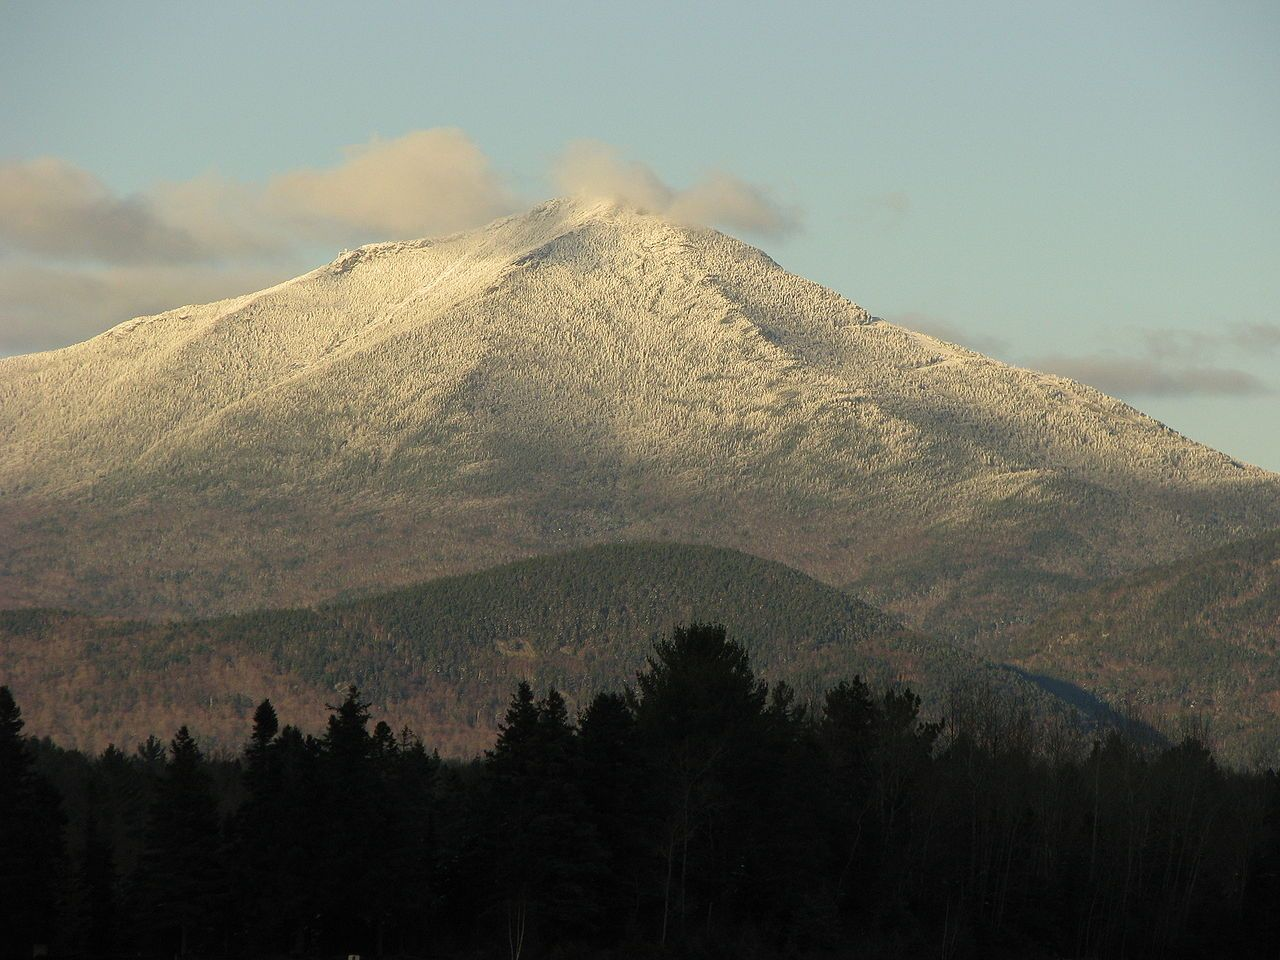 Whiteface Mountain from Lake Placid, NY, Airport. Click on this and the next image for larger viewing.